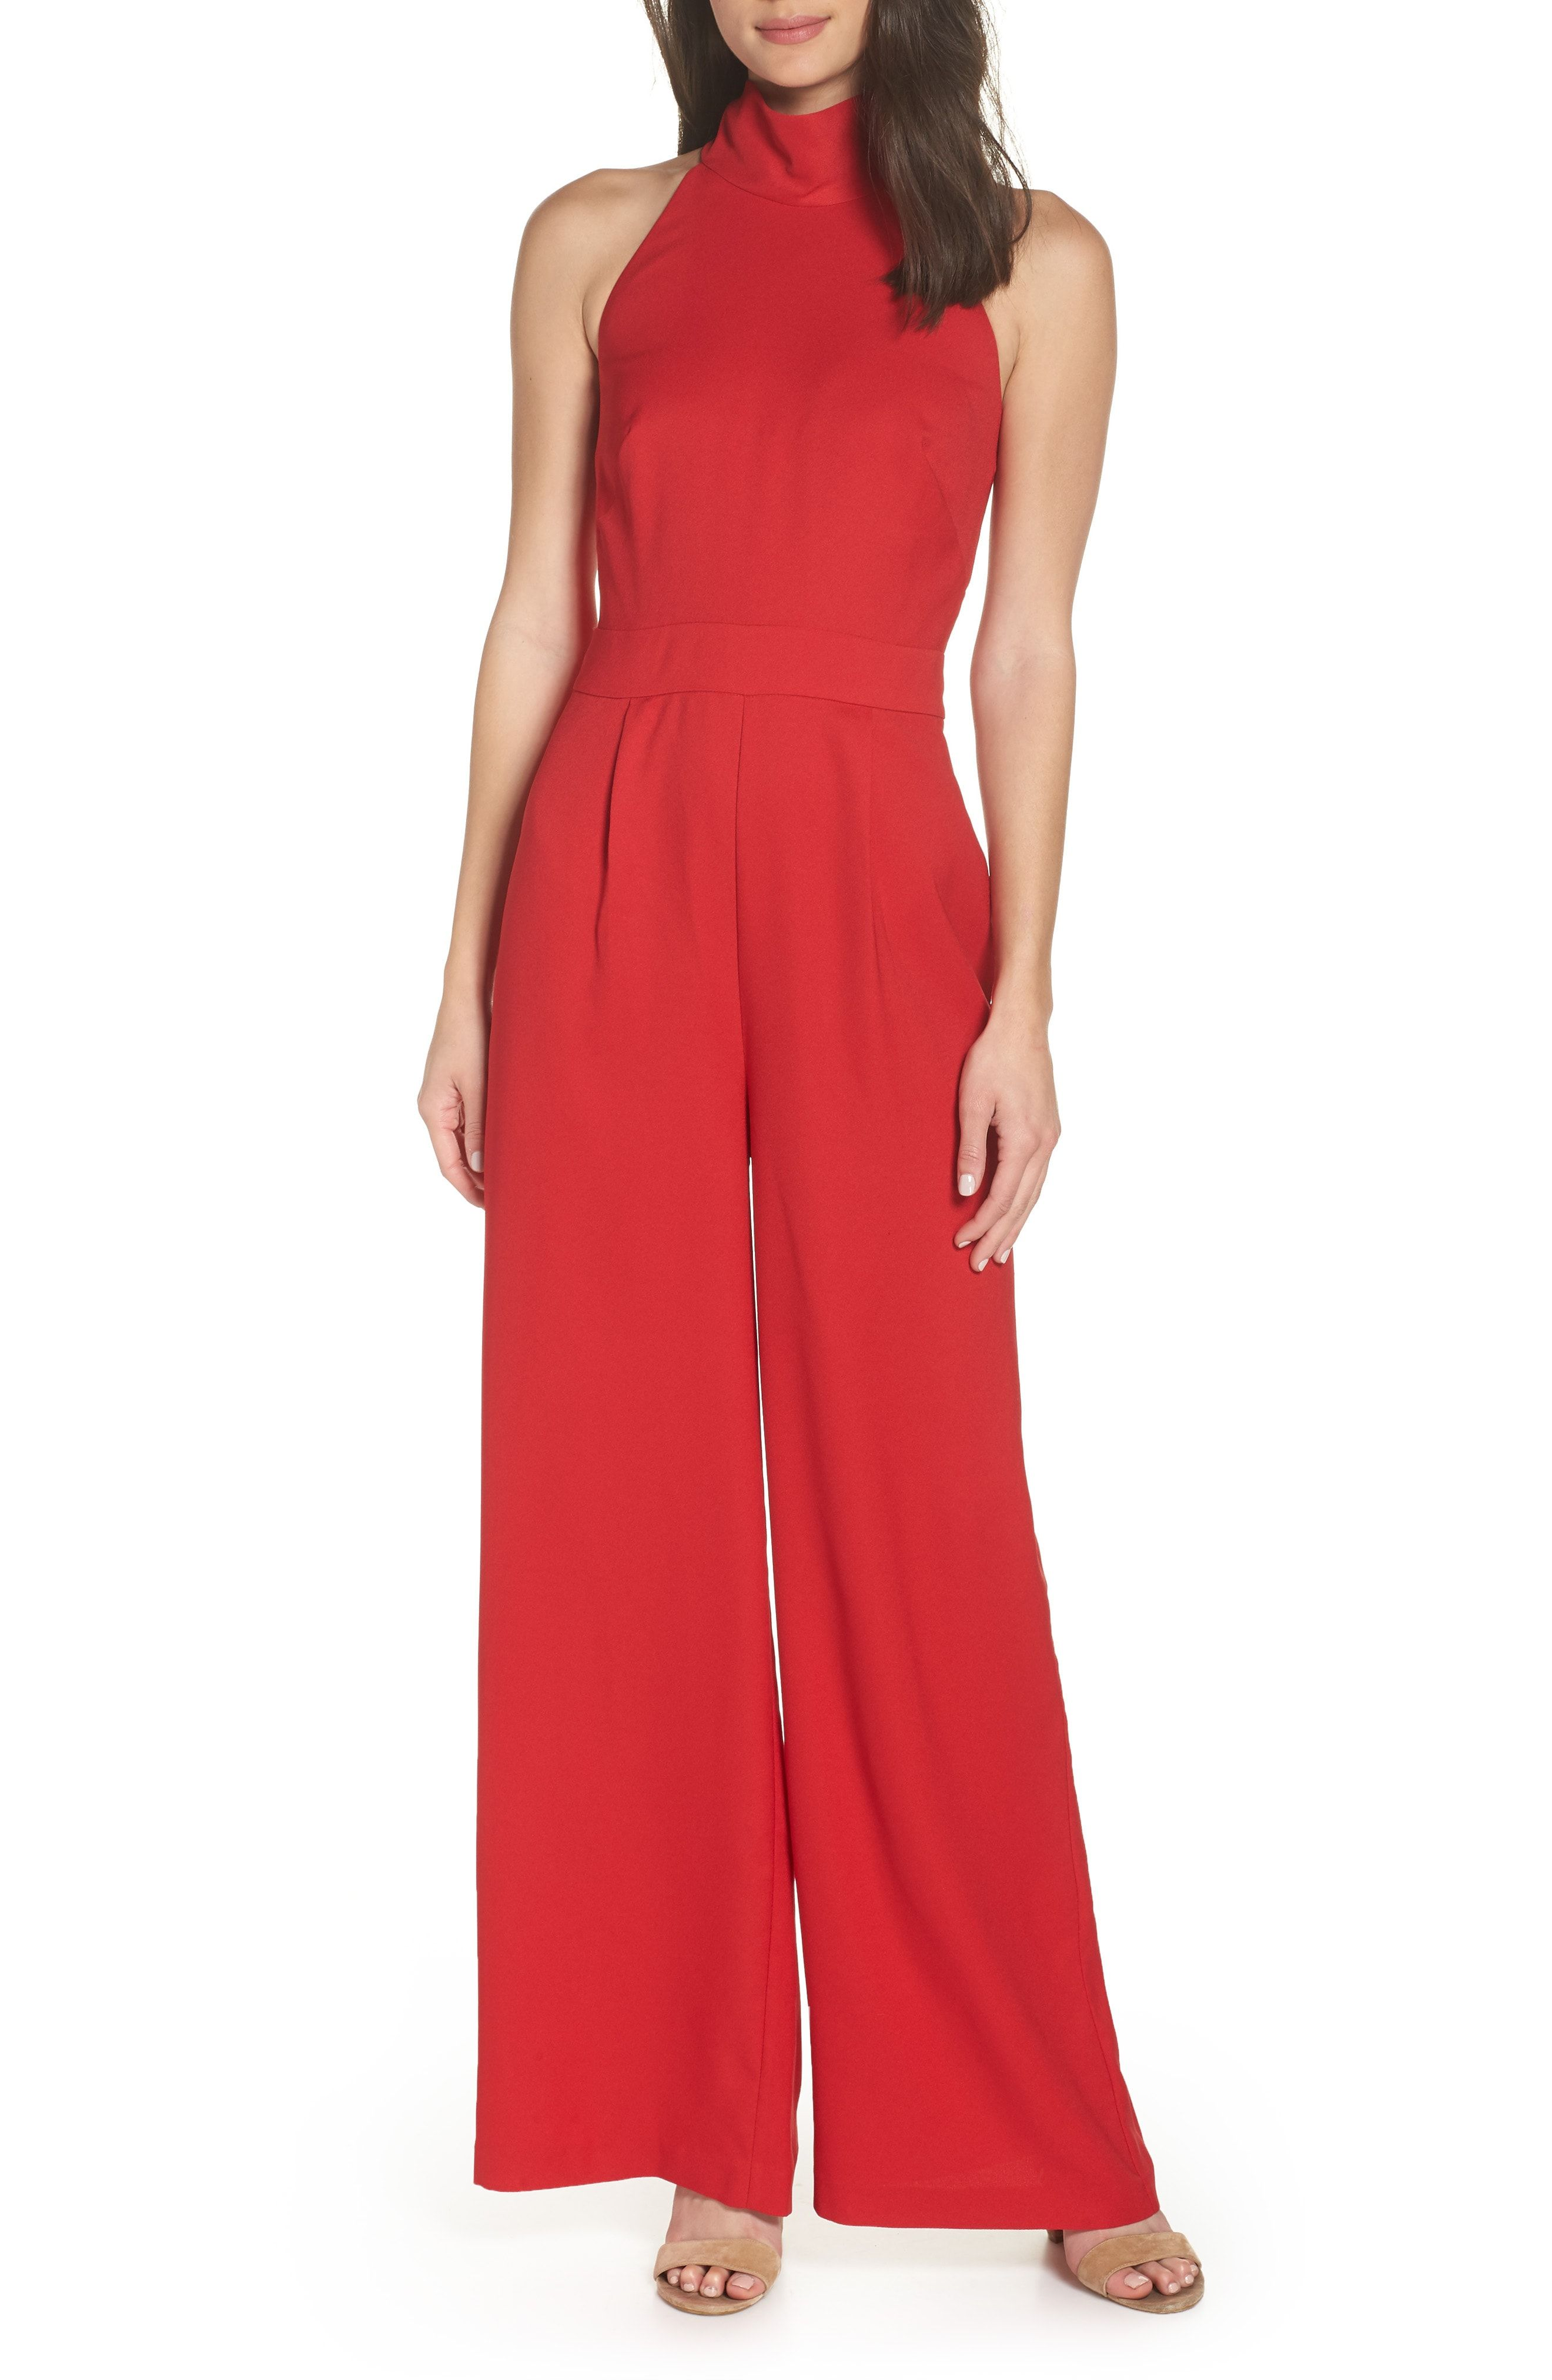 7dd8589223e 25 Dressy Jumpsuits for Wedding Guests 2019 - Best Jumpsuits to Wear to a  Wedding